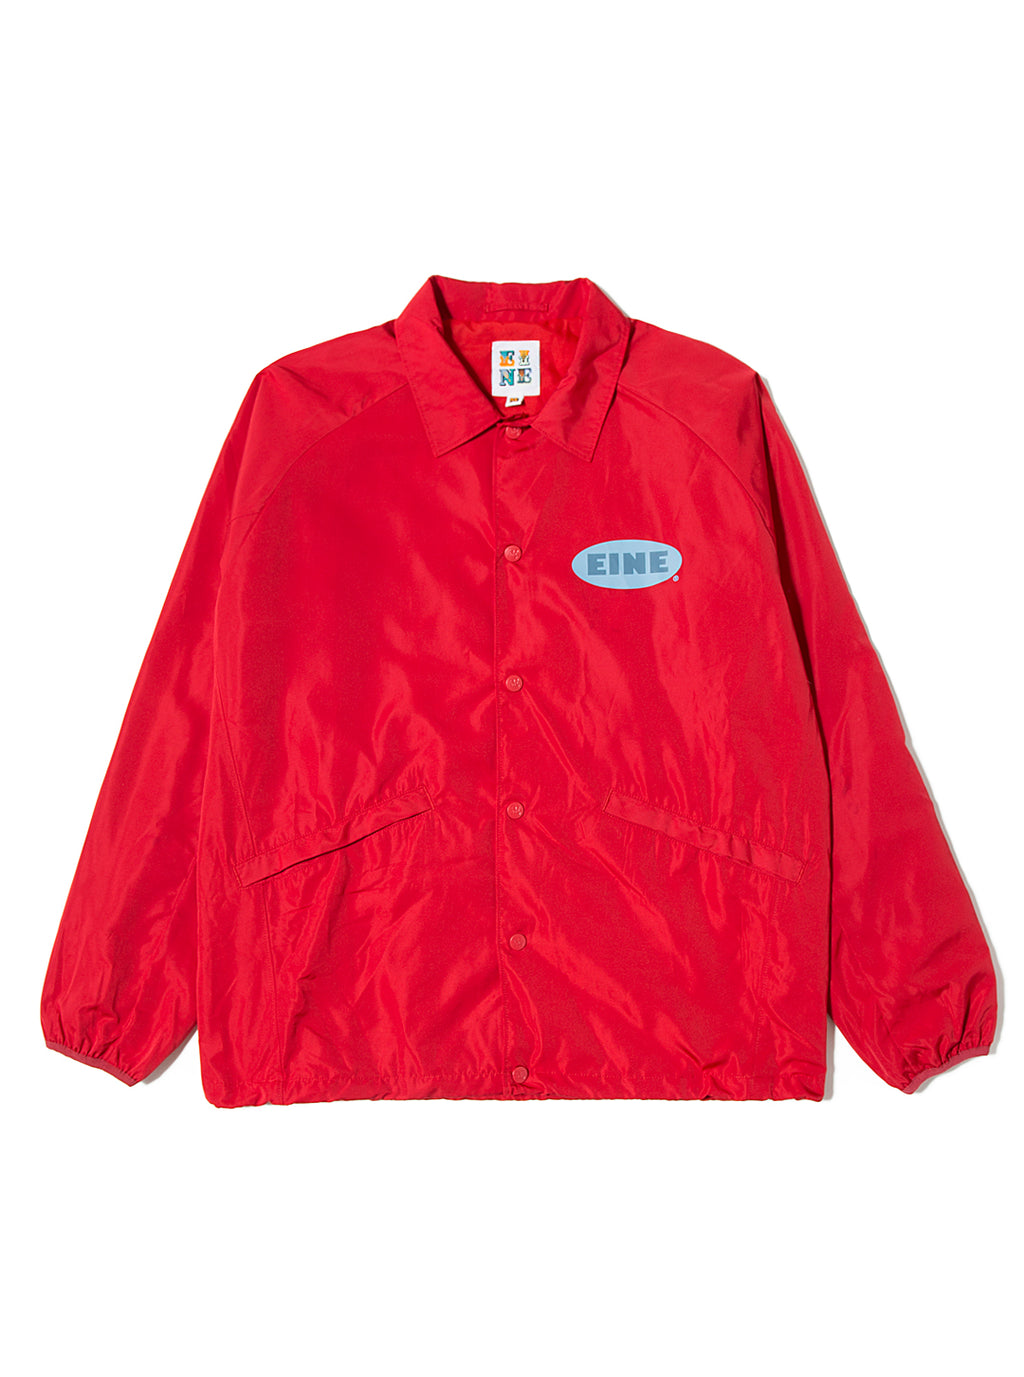 EINE Coach Jacket Red Sample